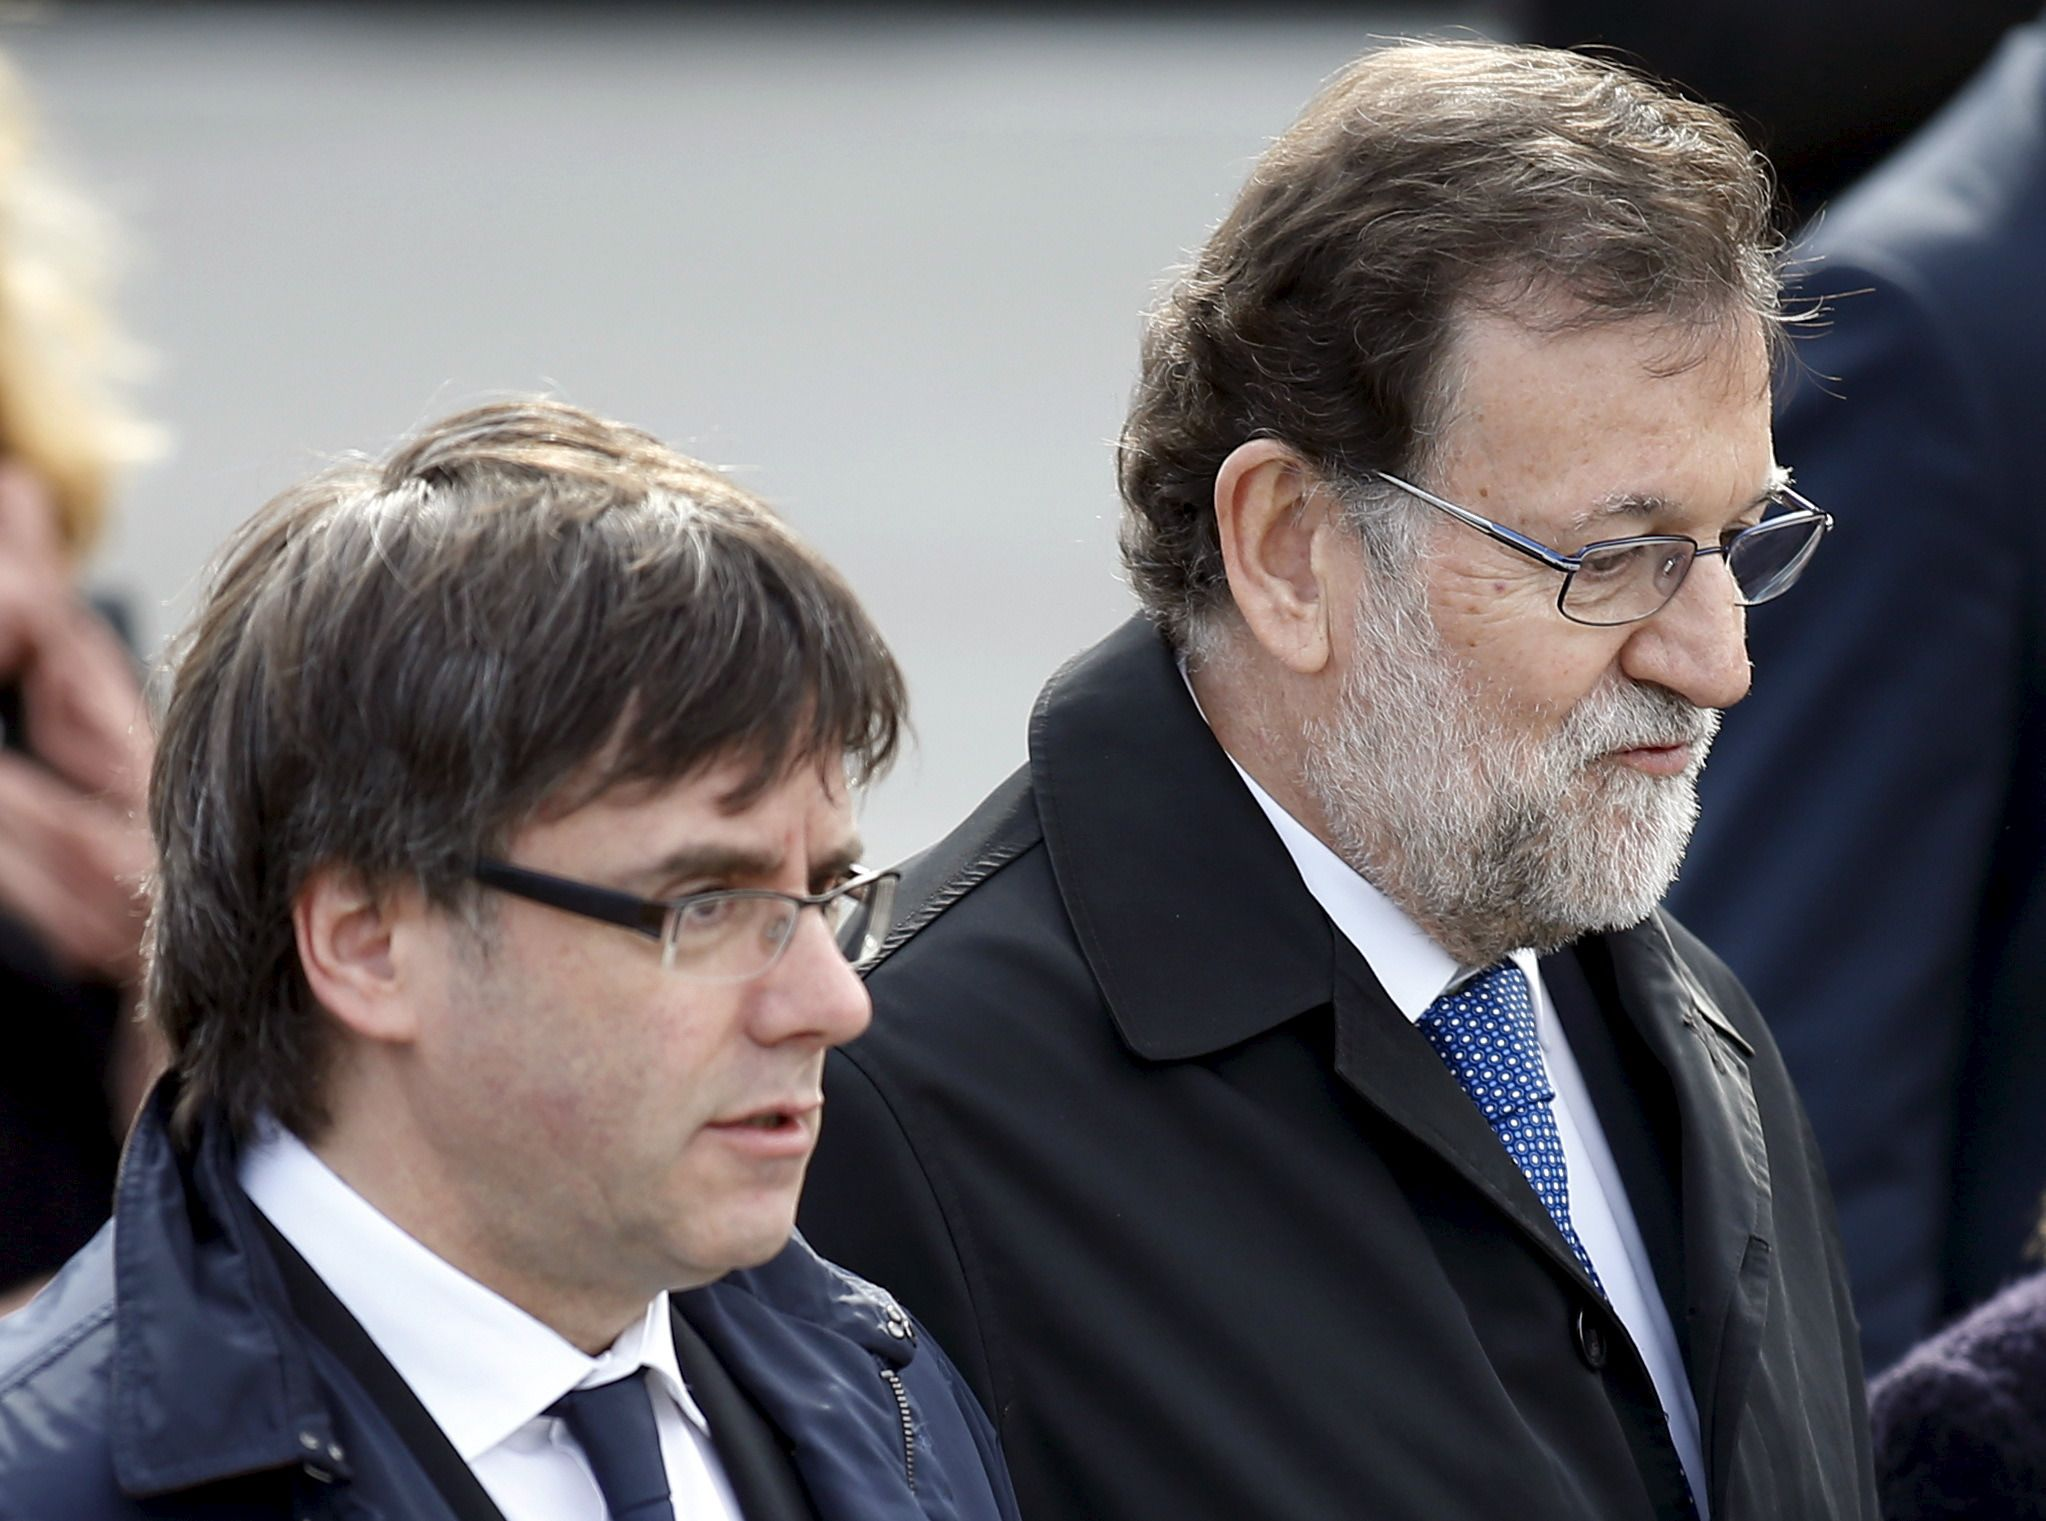 Brinksmanship >> Catalonia President Carles Puigdemont: Why Spain's Elections Don't Matter